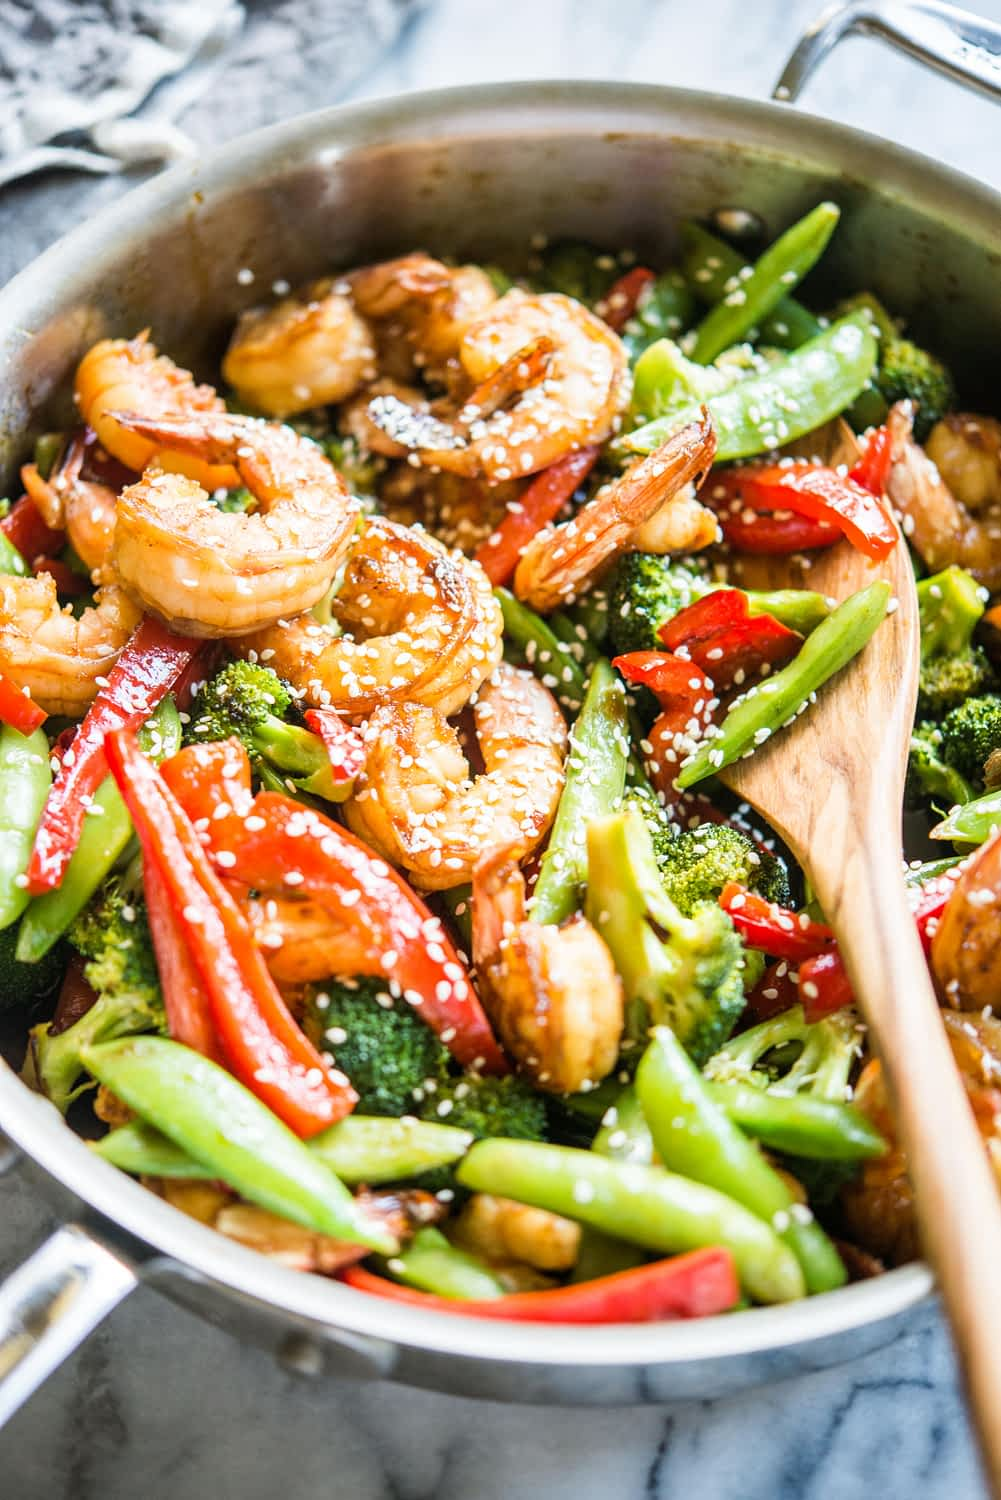 teriyaki shrimp stir fry with shrimp, red bell peppers, broccoli, and snap peas in a stainless steel skillet on a marble countertop